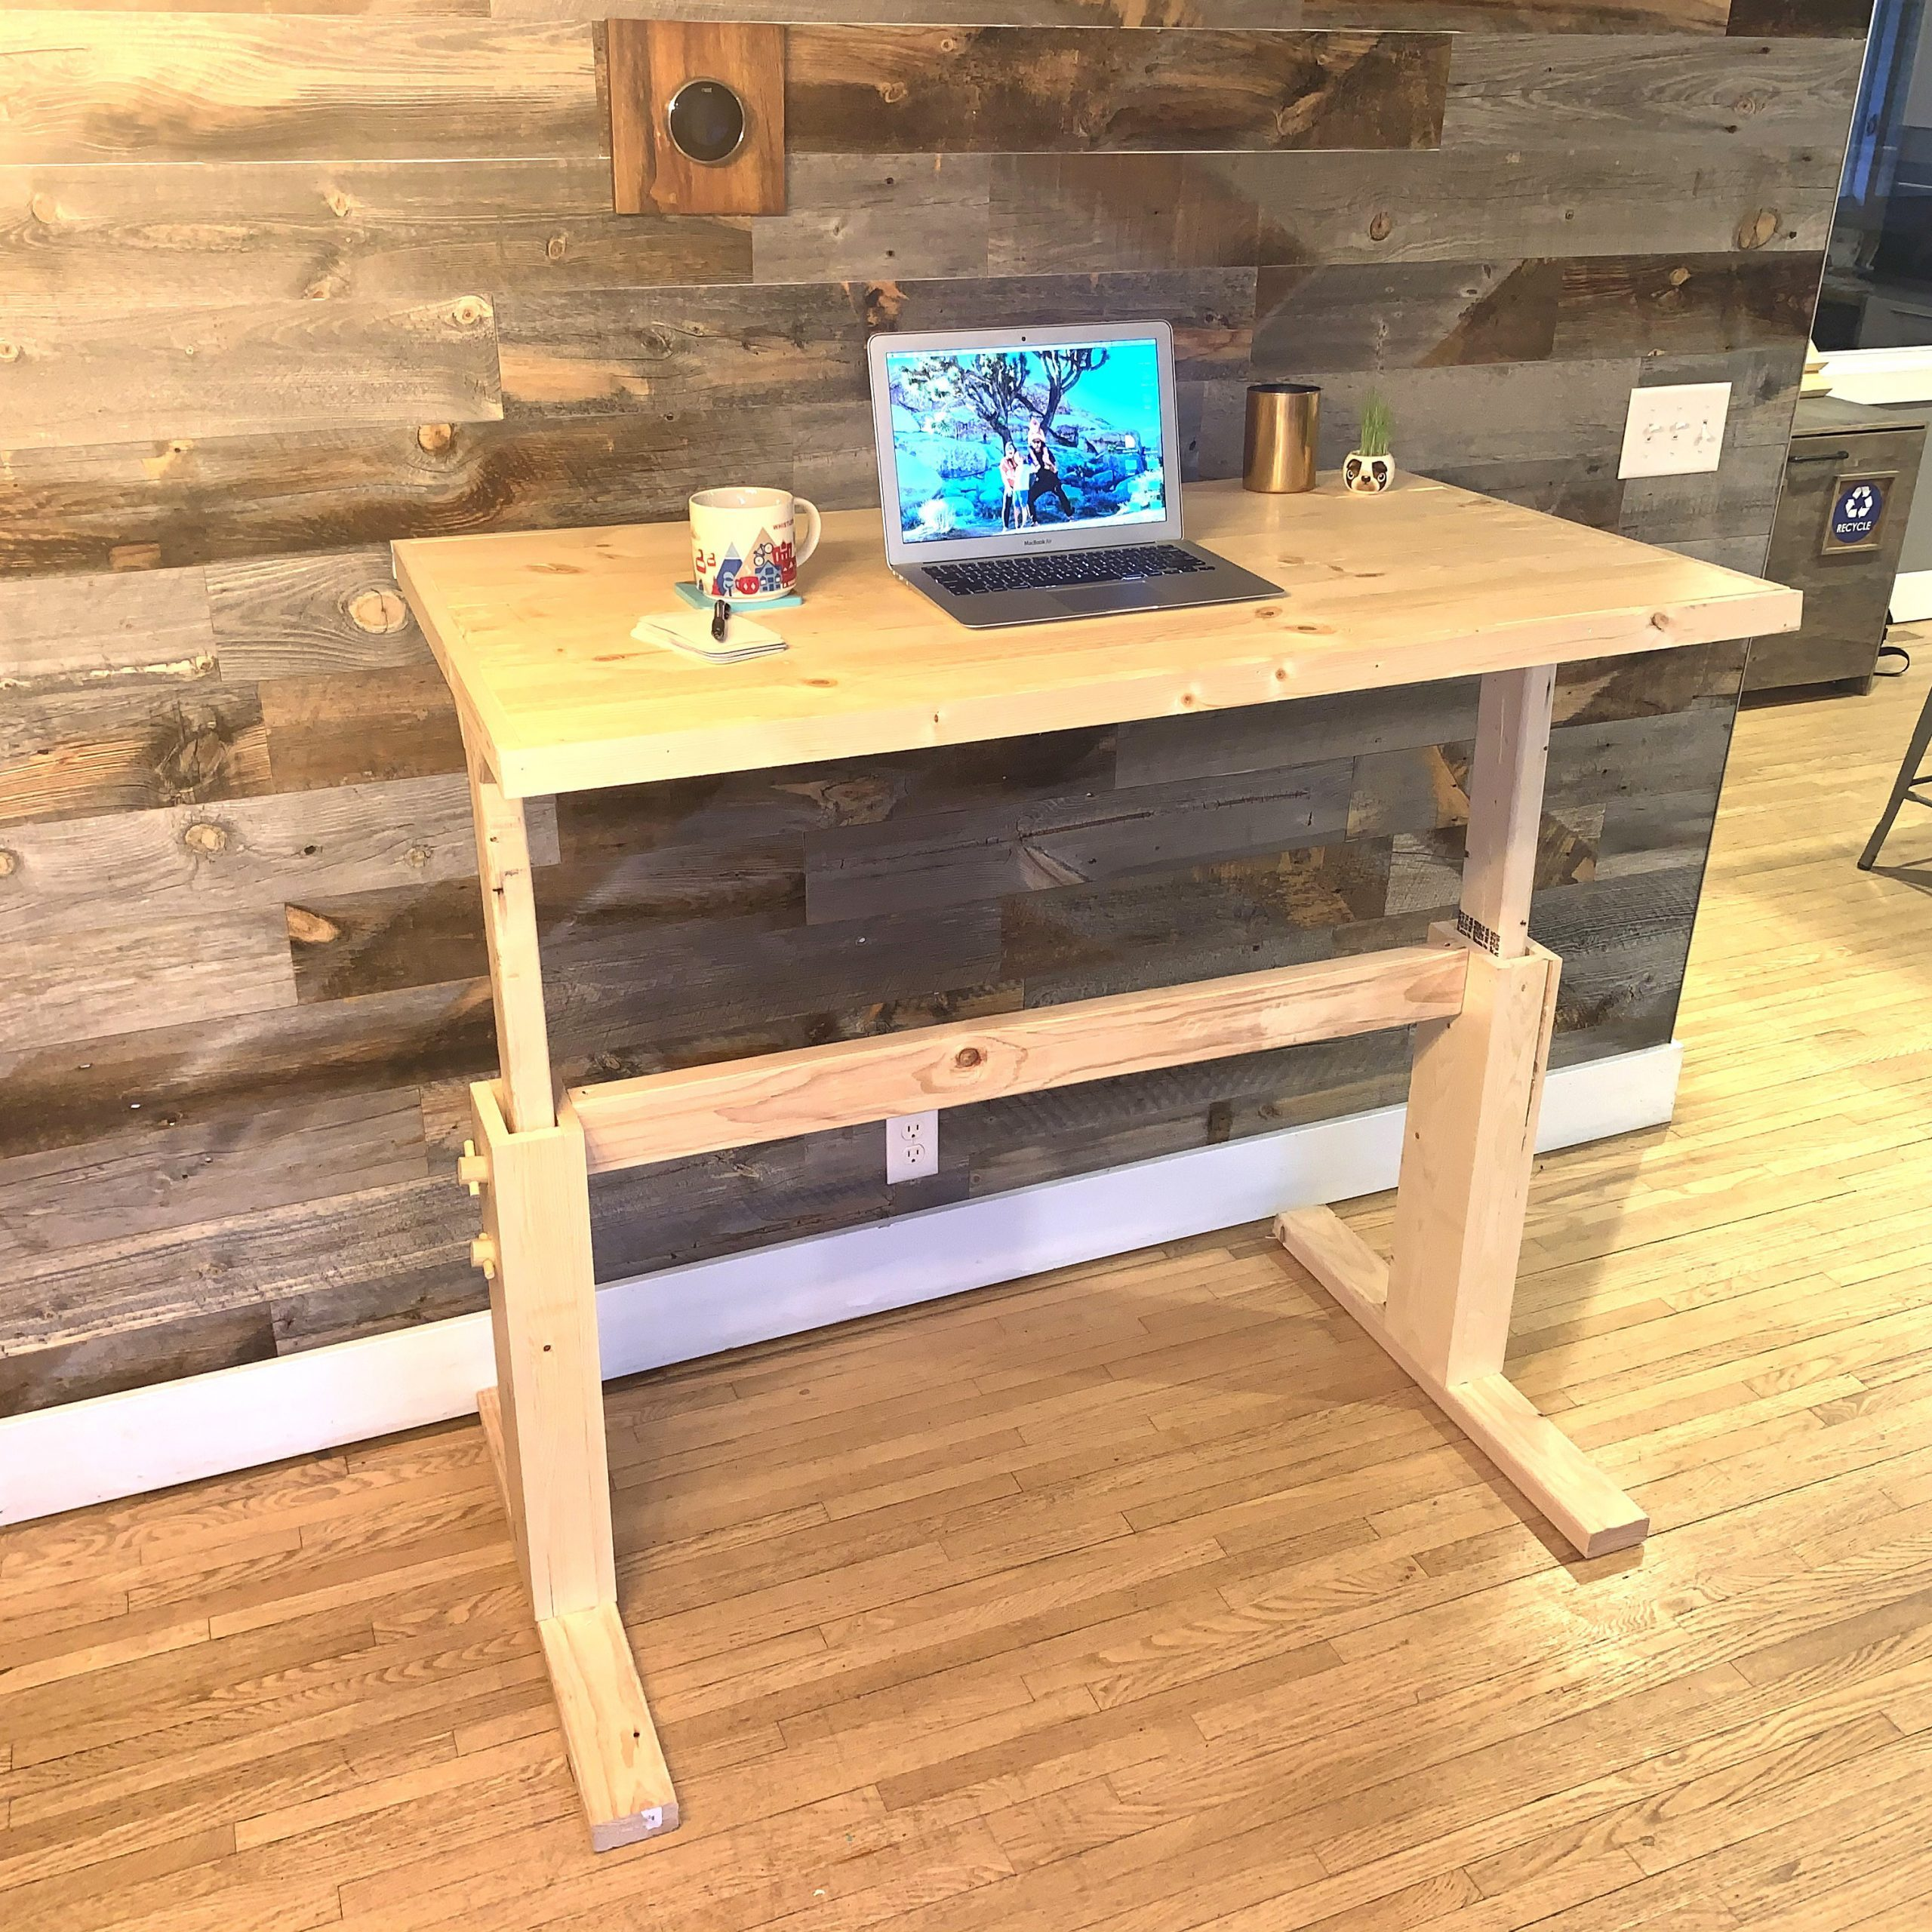 Sit Or Stand How To Make Your Own Adjustable Diy Desk Family Handyman